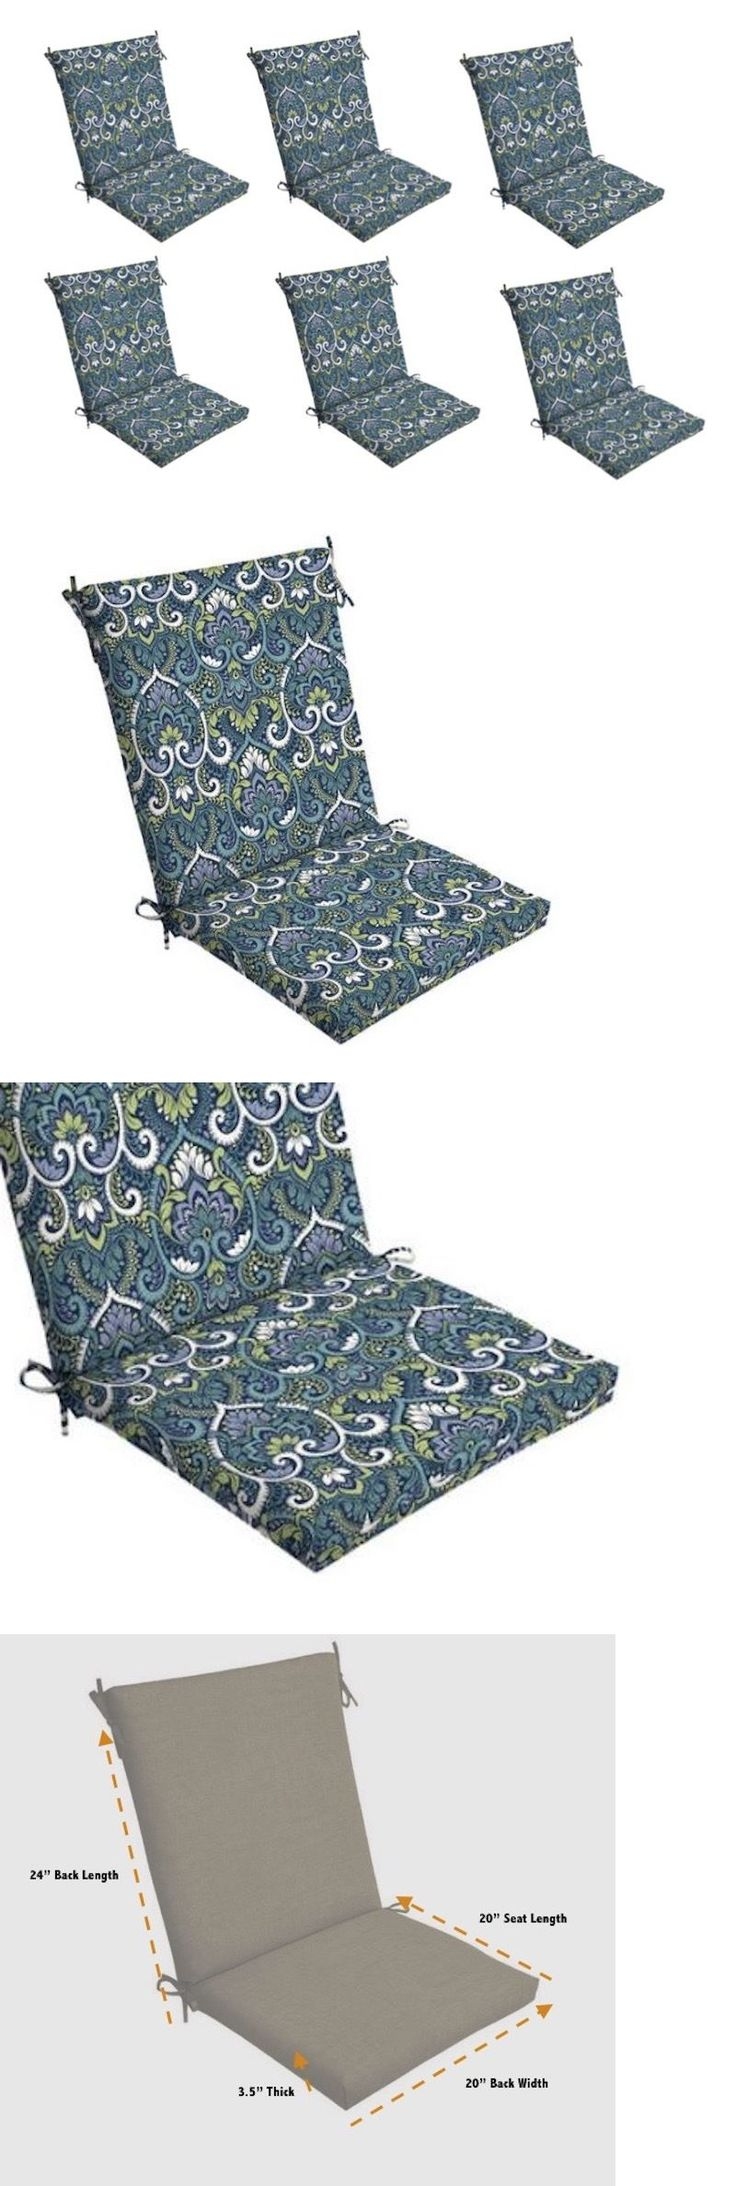 Cushions and Pads 79683: Blue Damask Patio Chair Cushion Set Of 6 Outdoor Dining Replacement Cushions Sea -> BUY IT NOW ONLY: $274.98 on eBay!